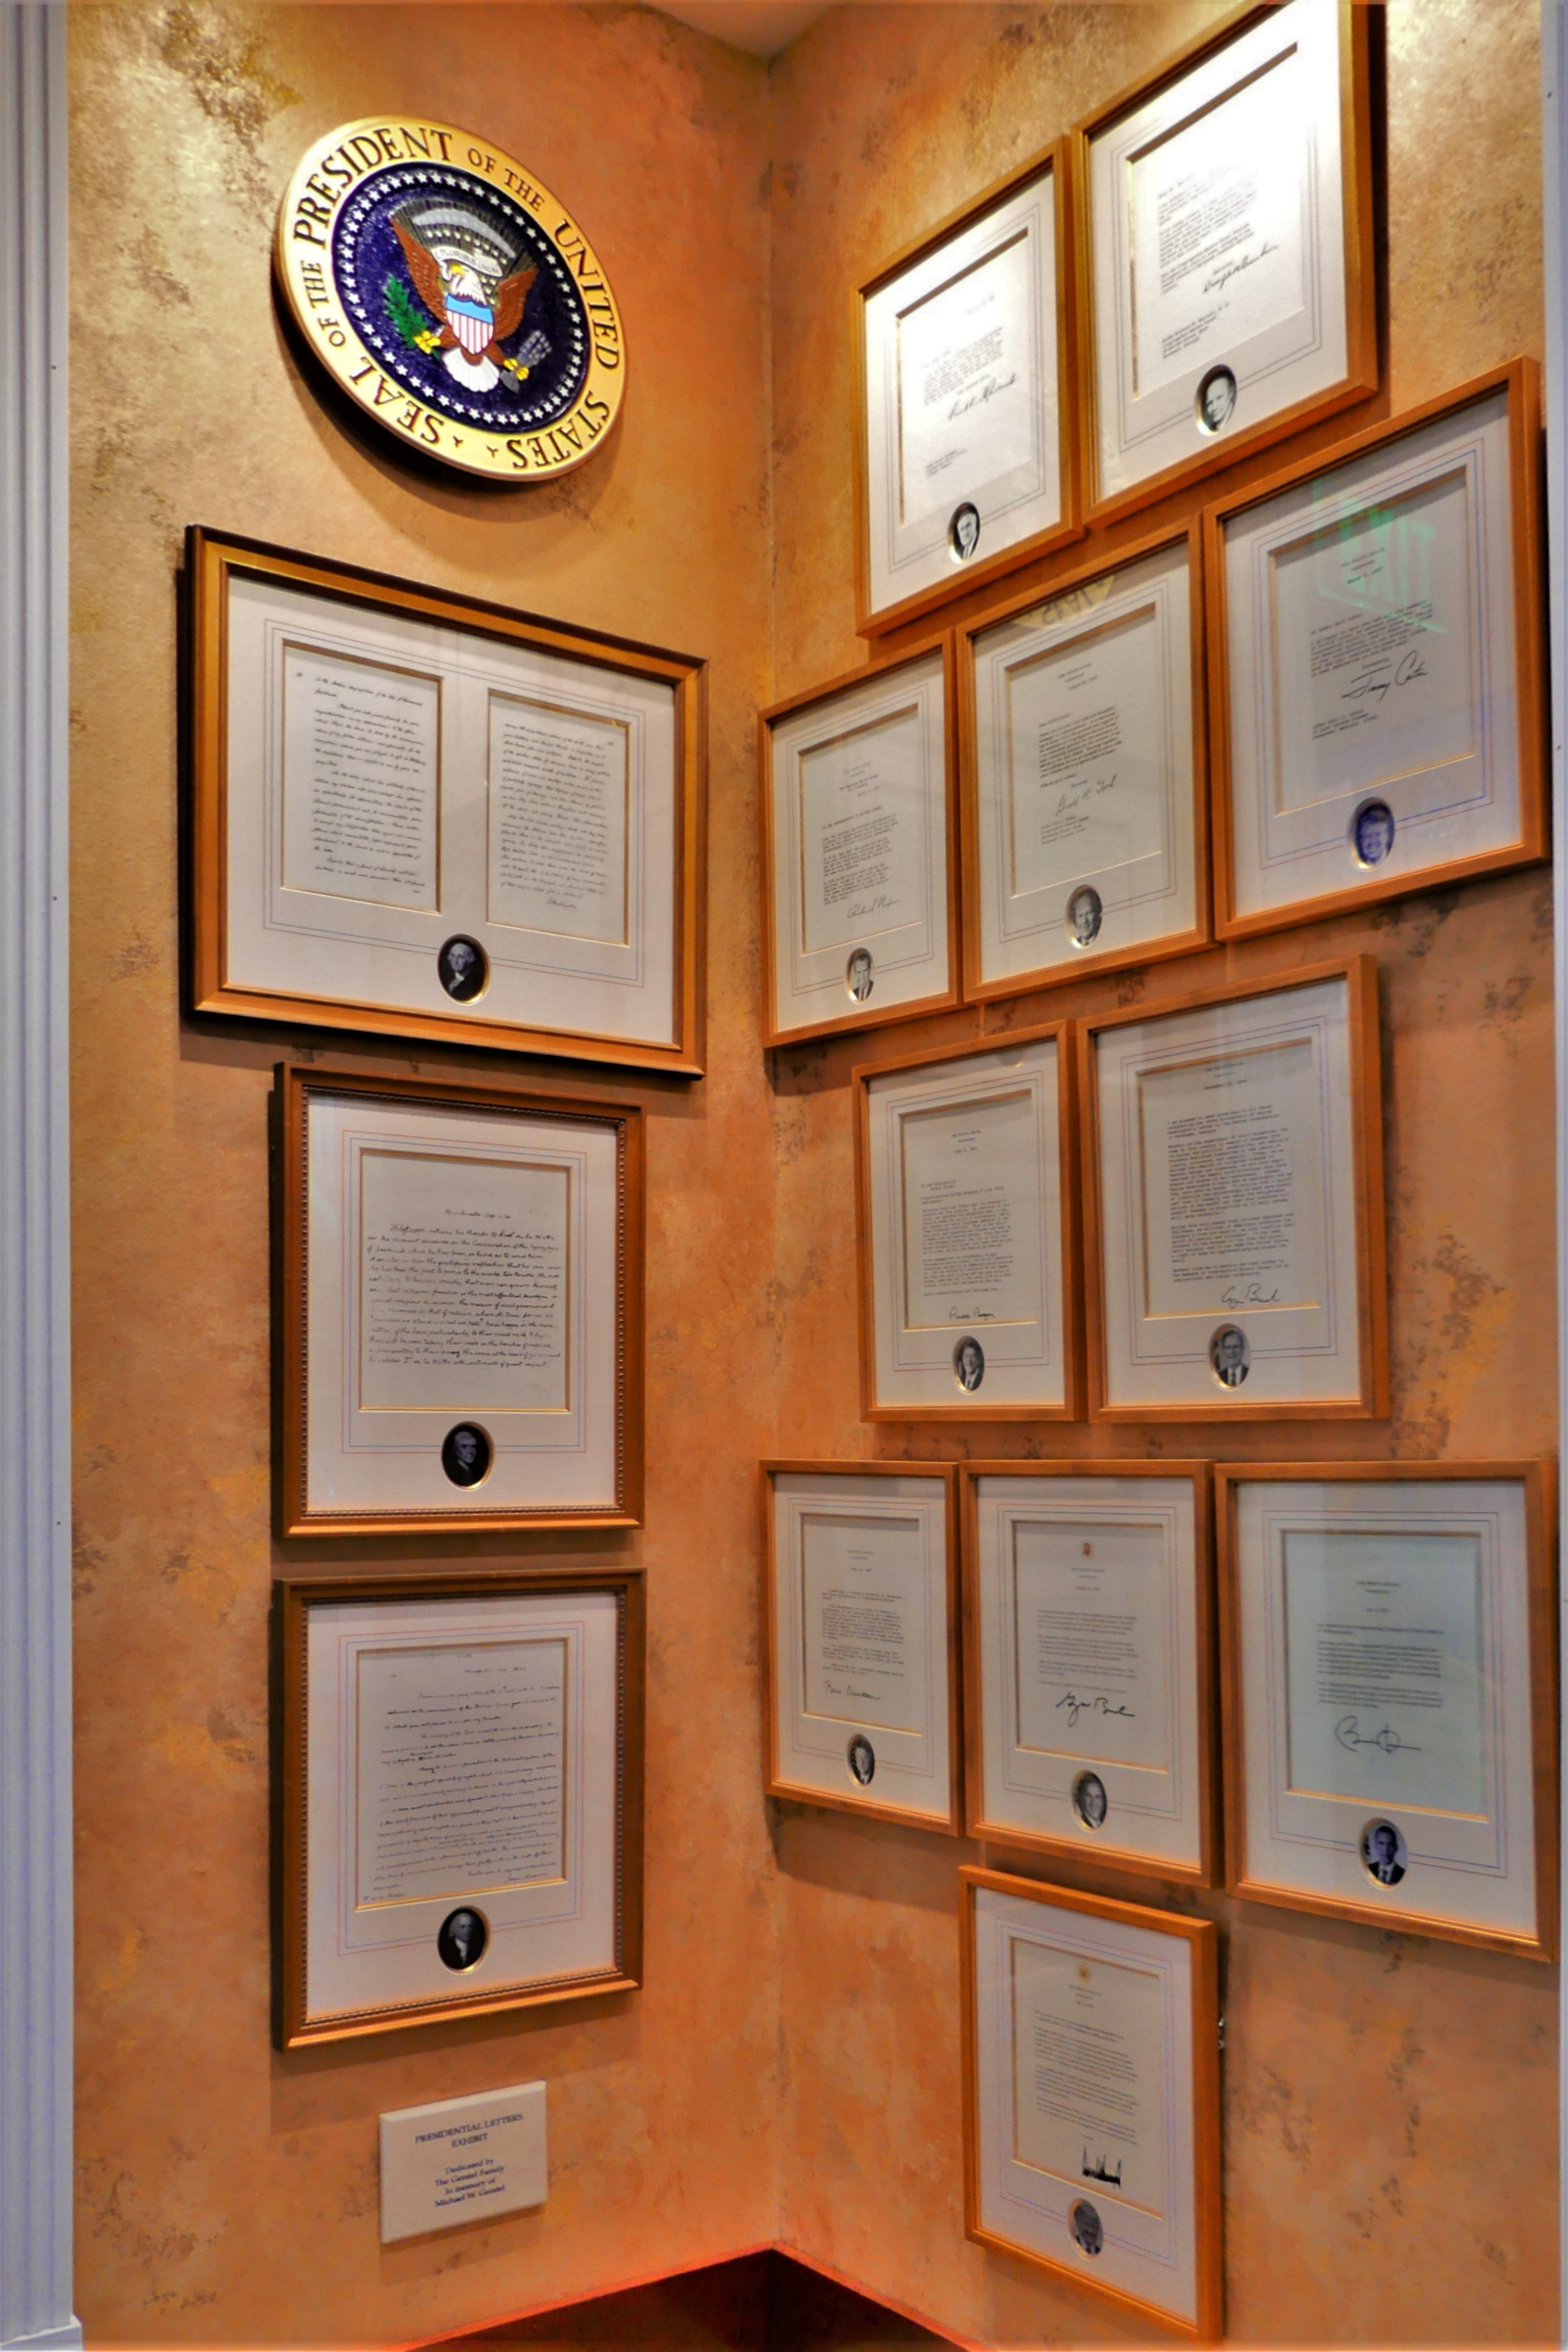 Wall of Presidents